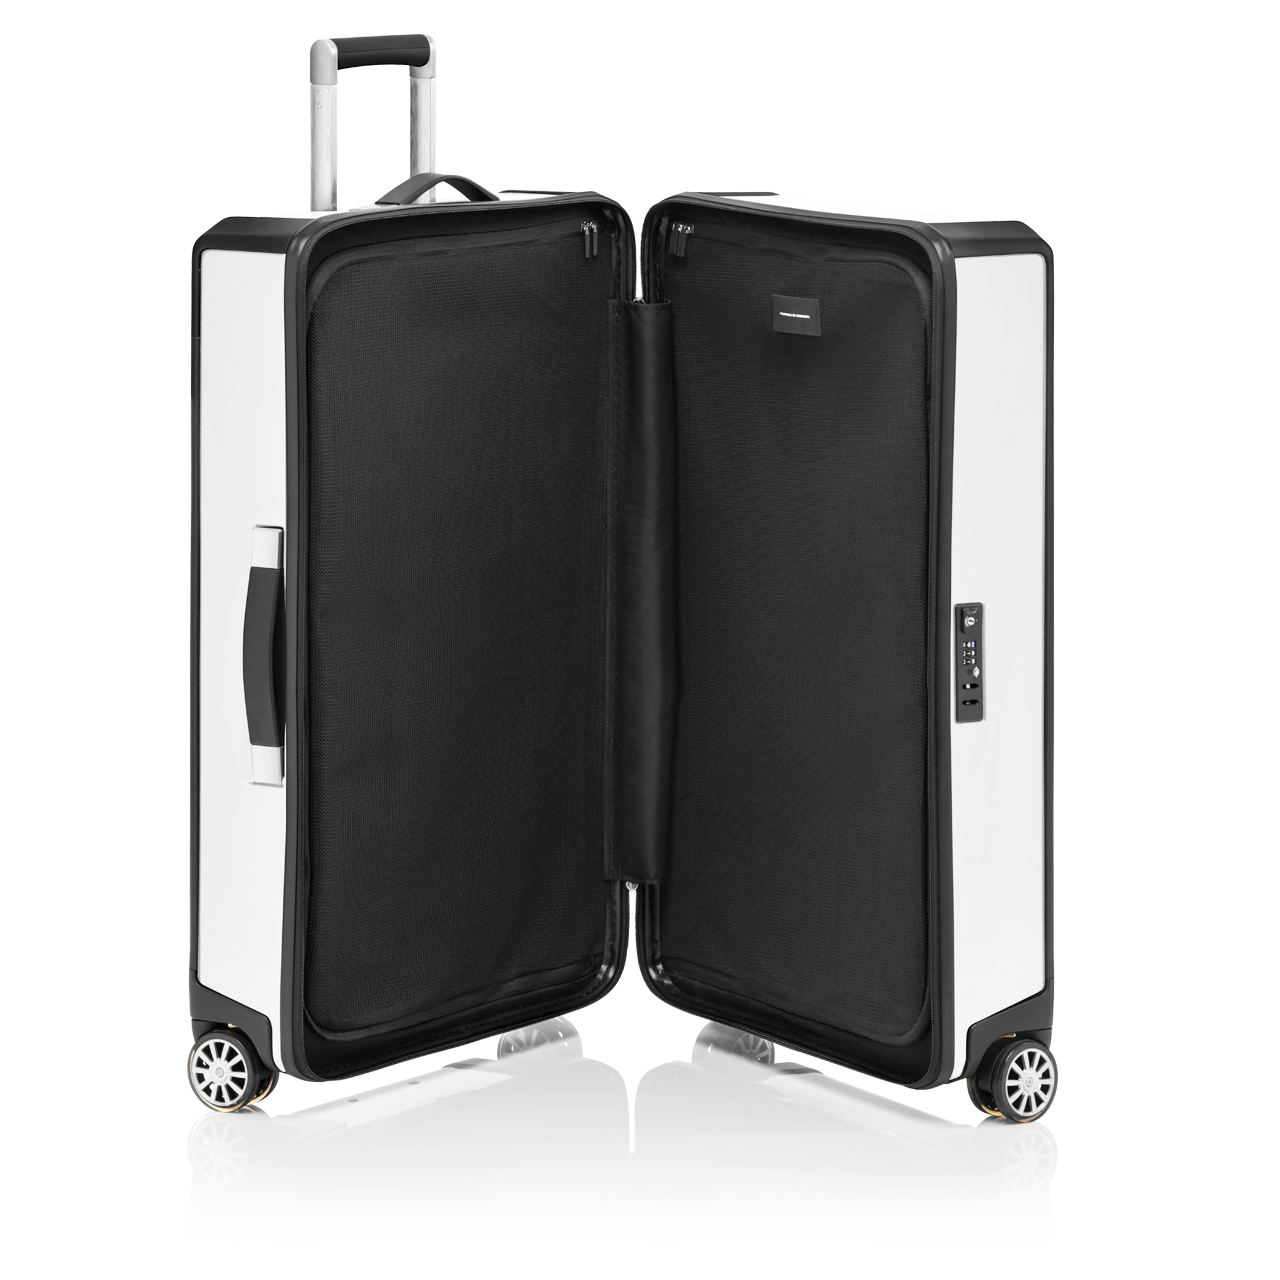 ROADSTER HARDCASE TROLLEY L - фото 3